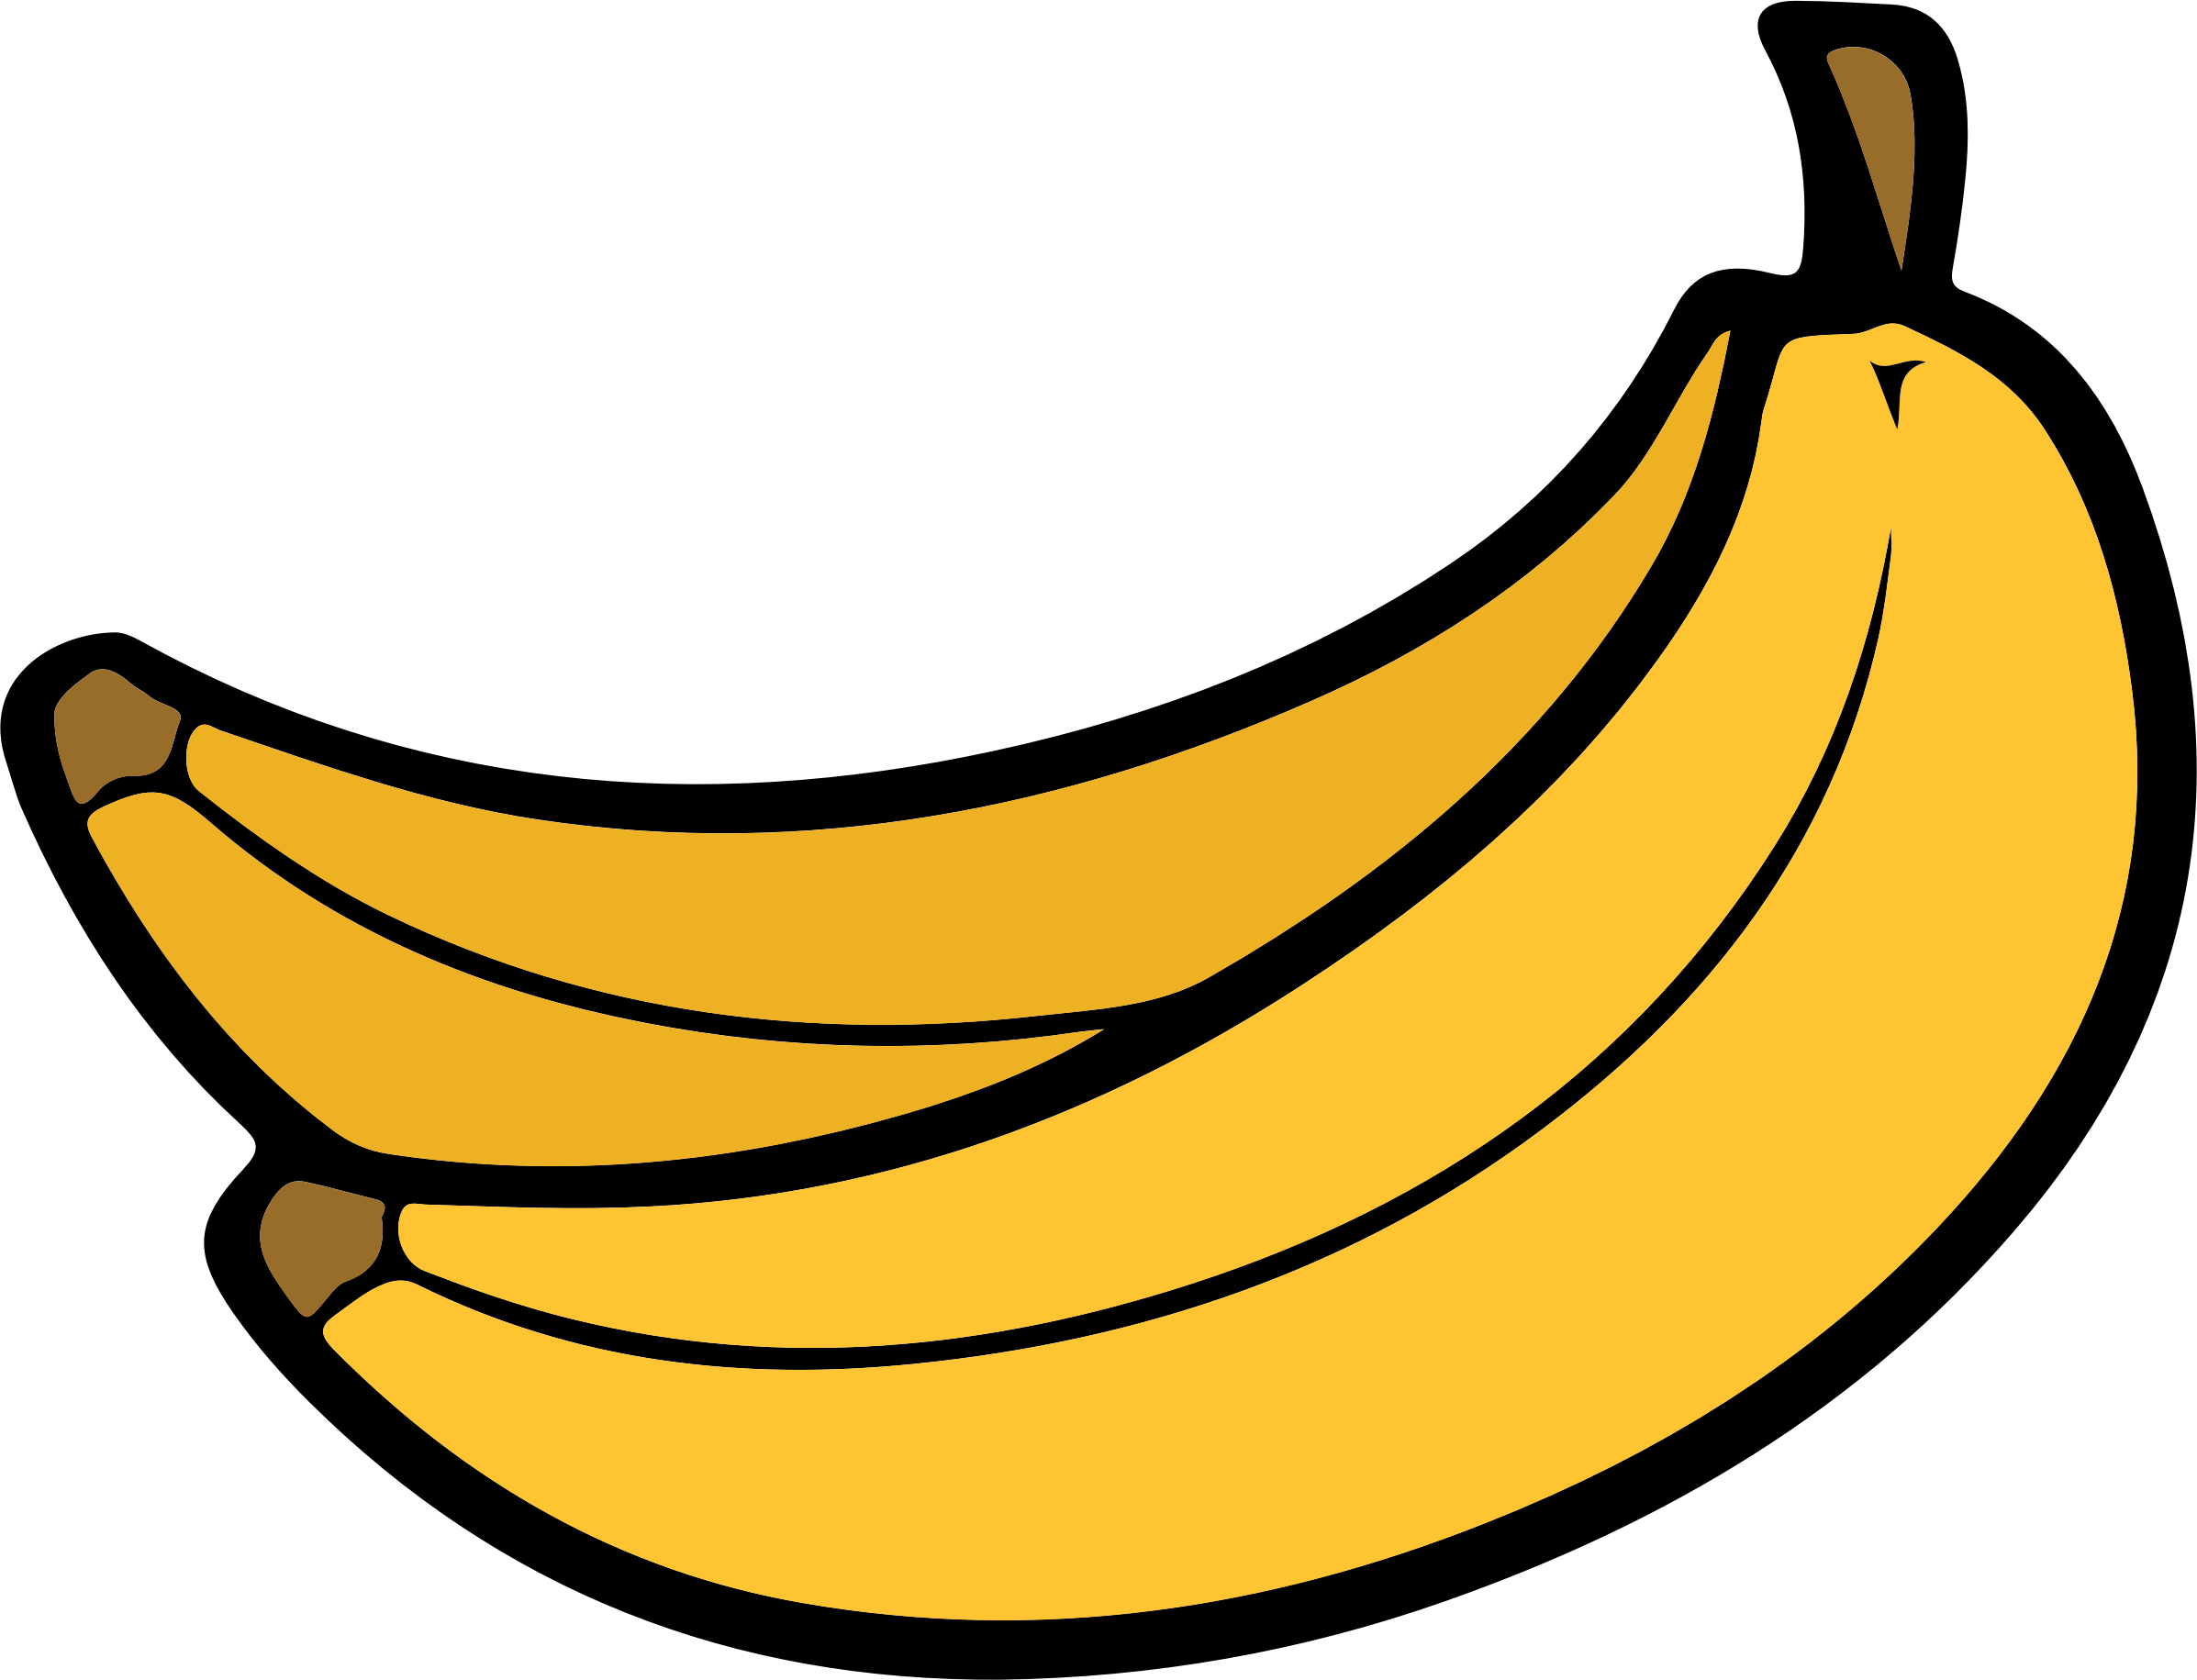 Banana by casino